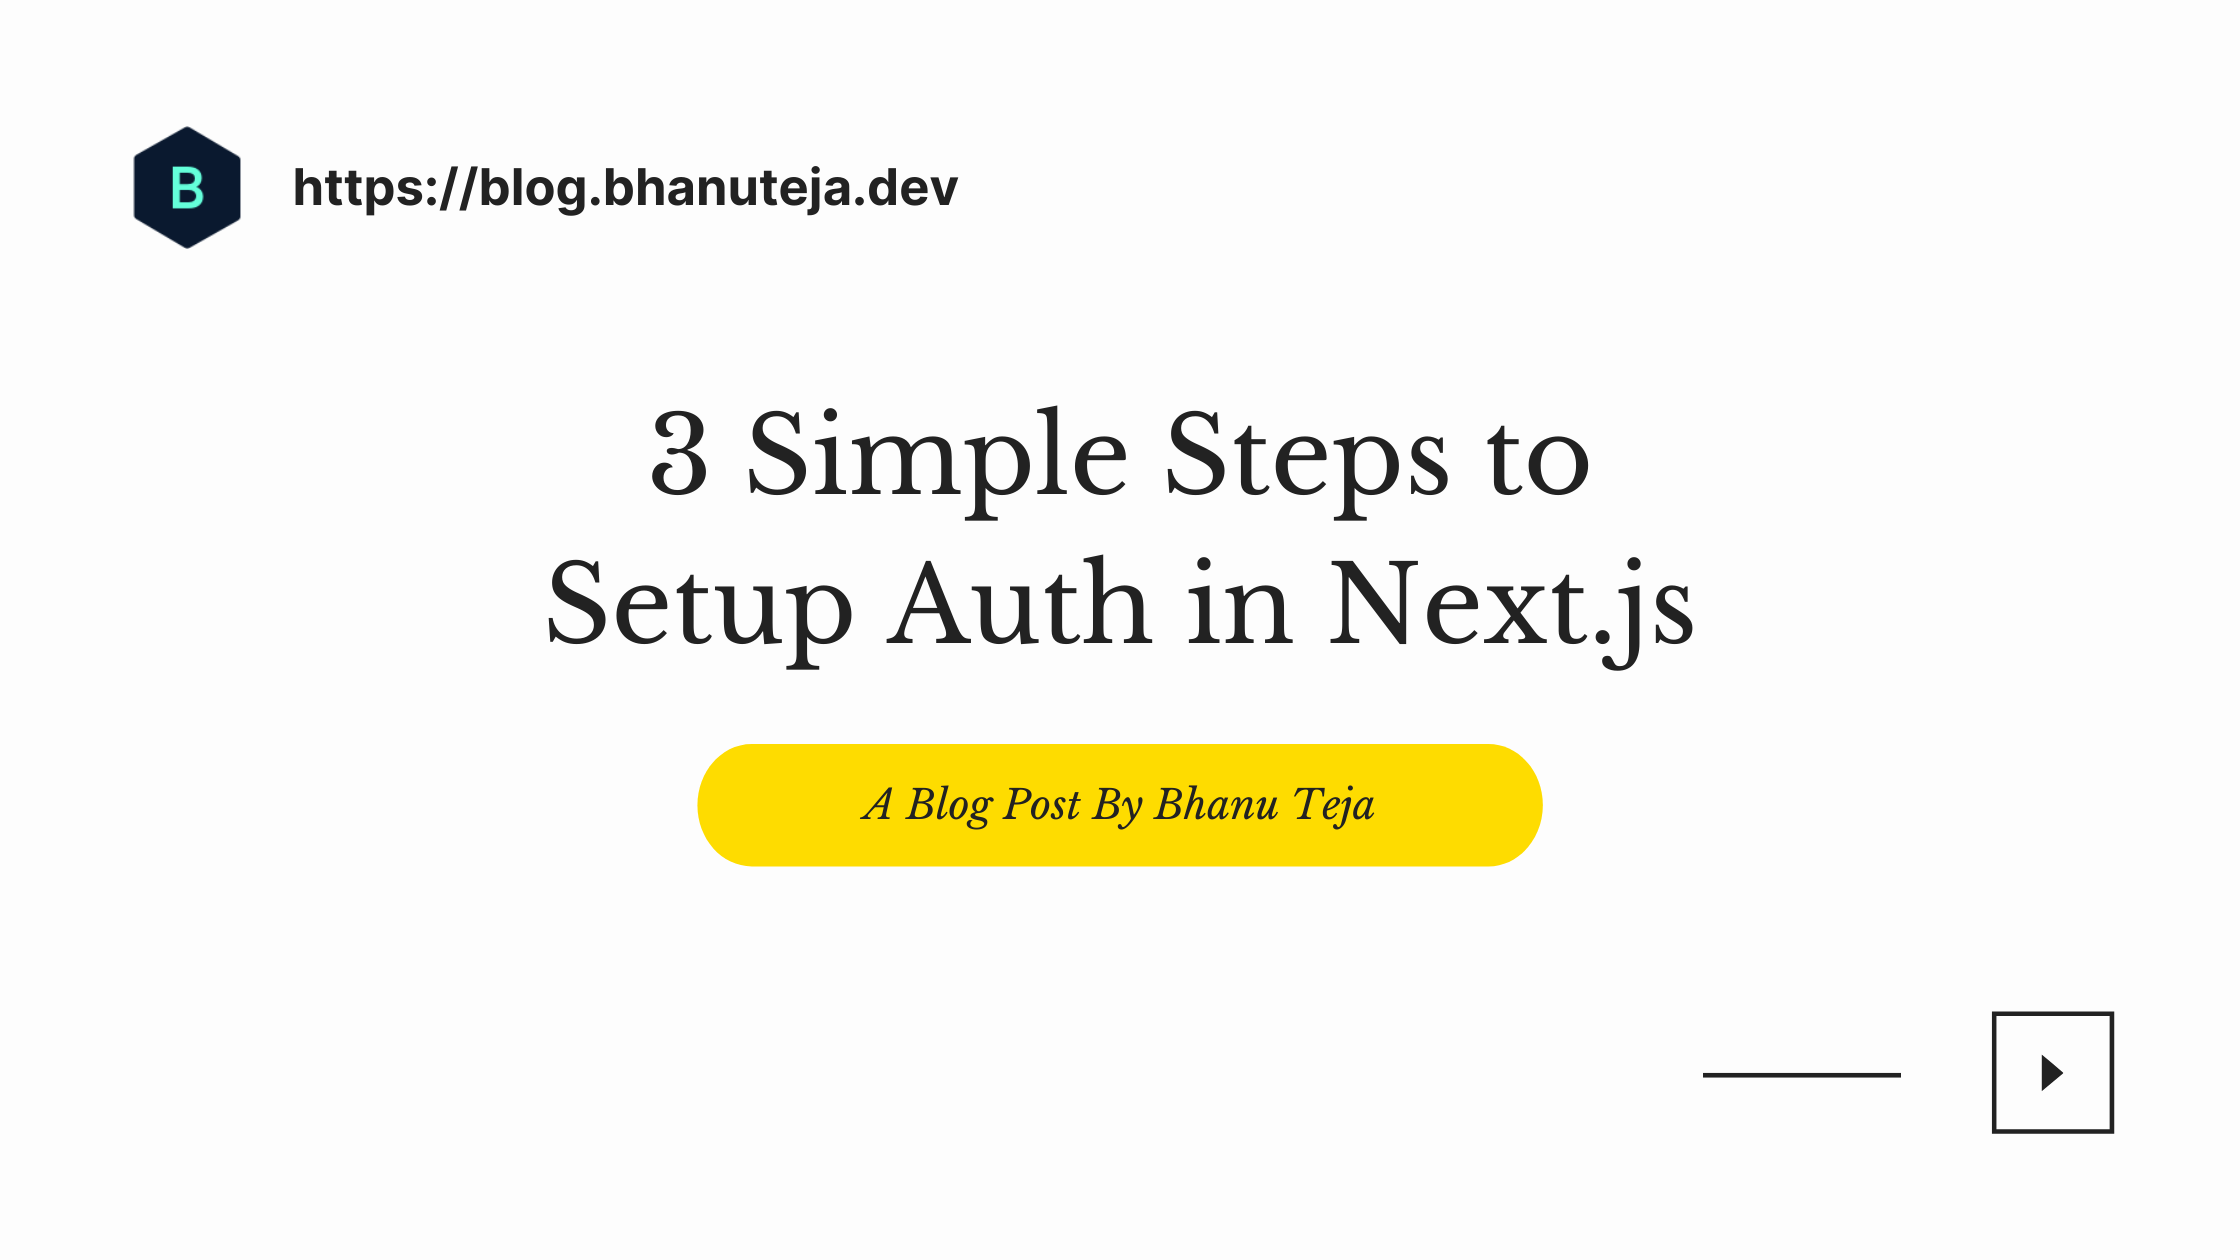 3 Simple Steps To Setup Authentication in Next.js